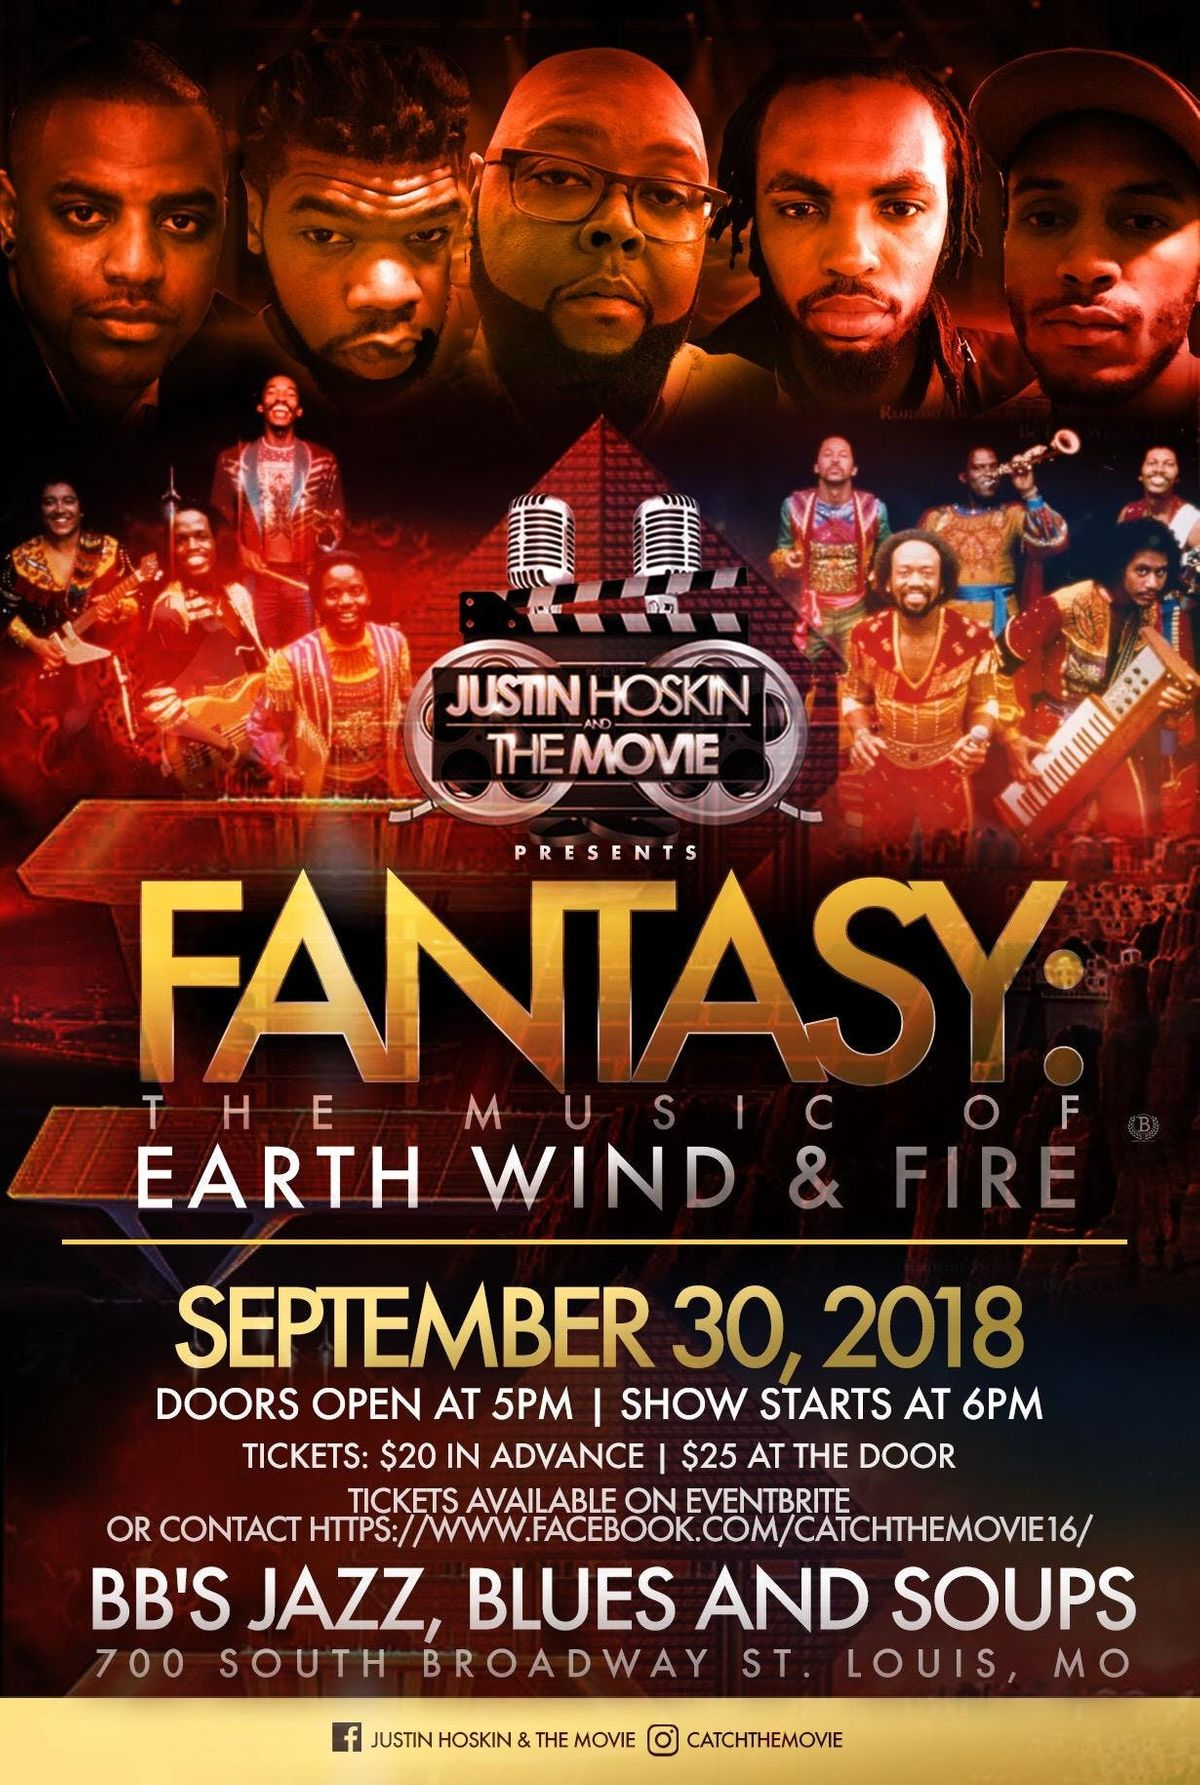 Fantasy:The Music Of Earth Wind & Fire at BB's Jazz, Blues